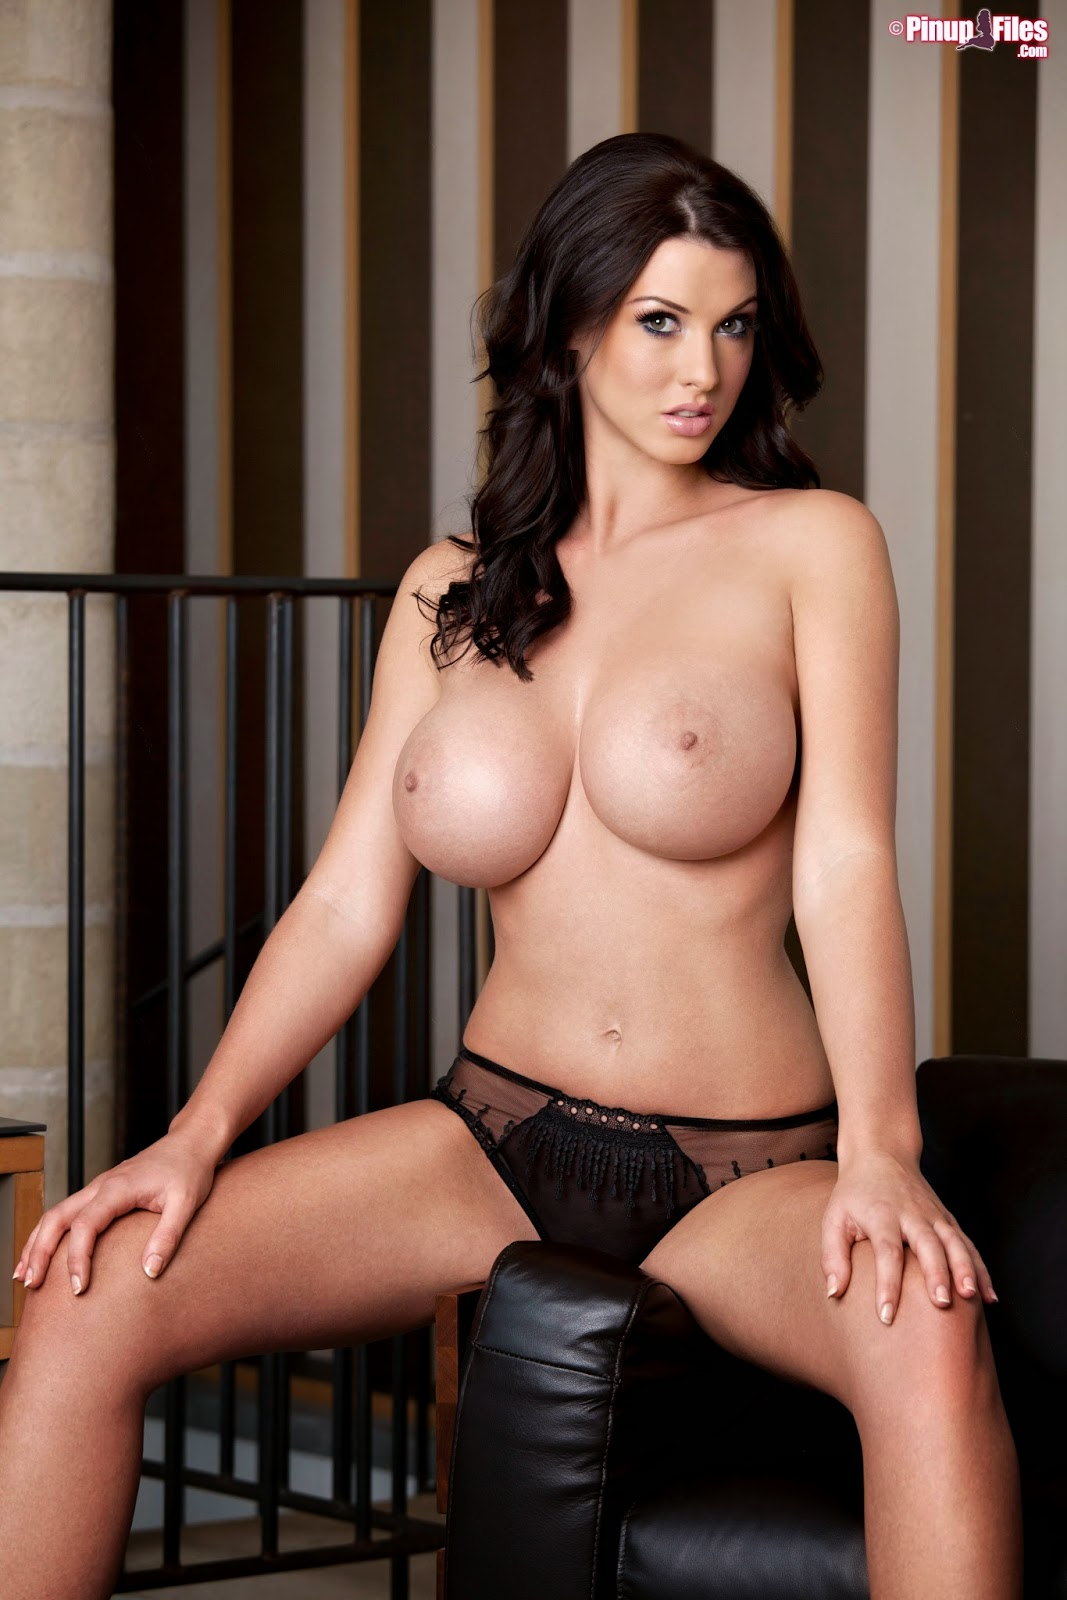 Alice goodwin models her sexy body in lingerie 2